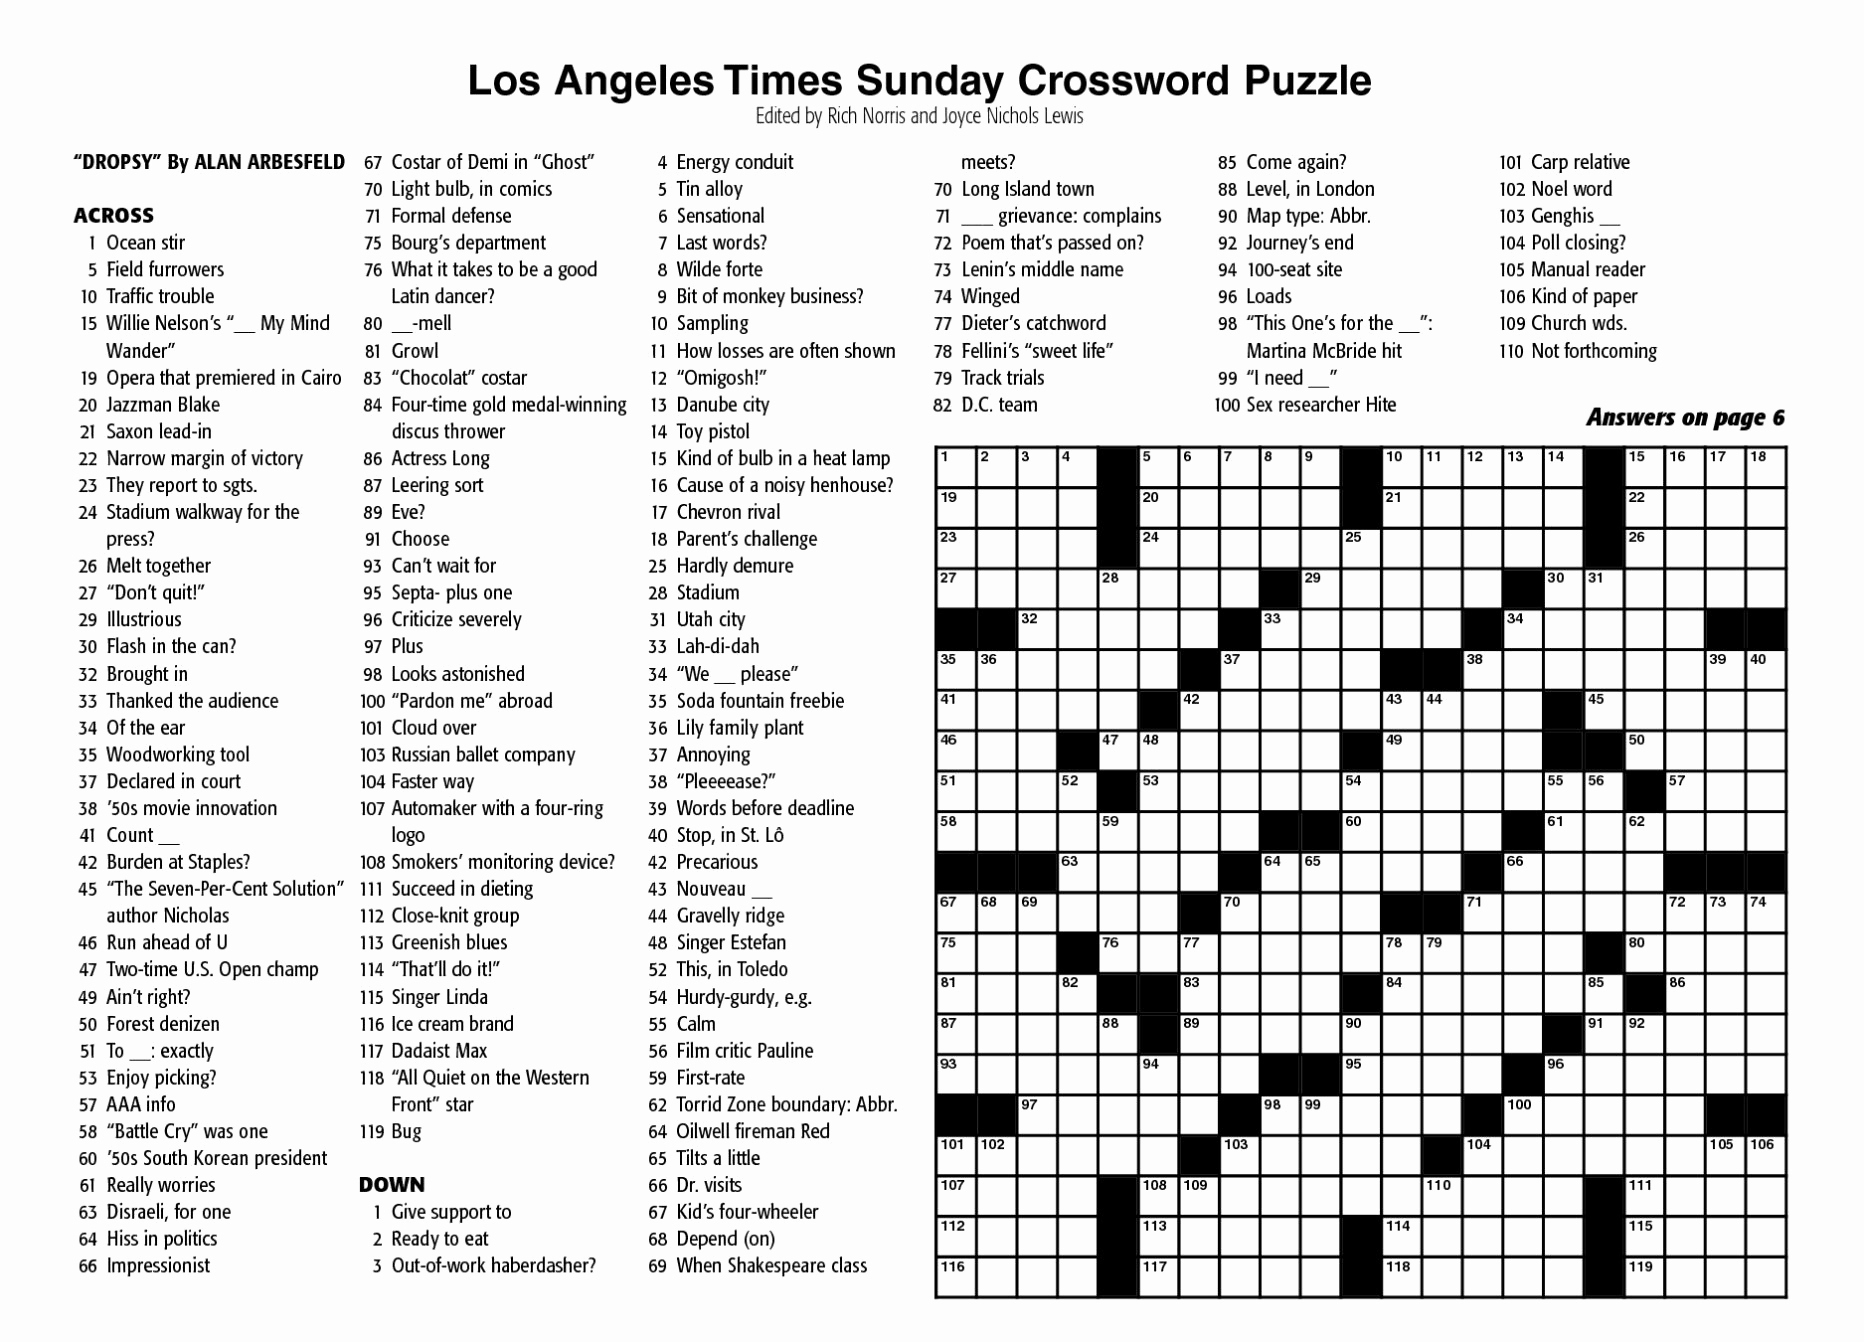 This is a graphic of Critical Washington Post Sunday Crossword Printable